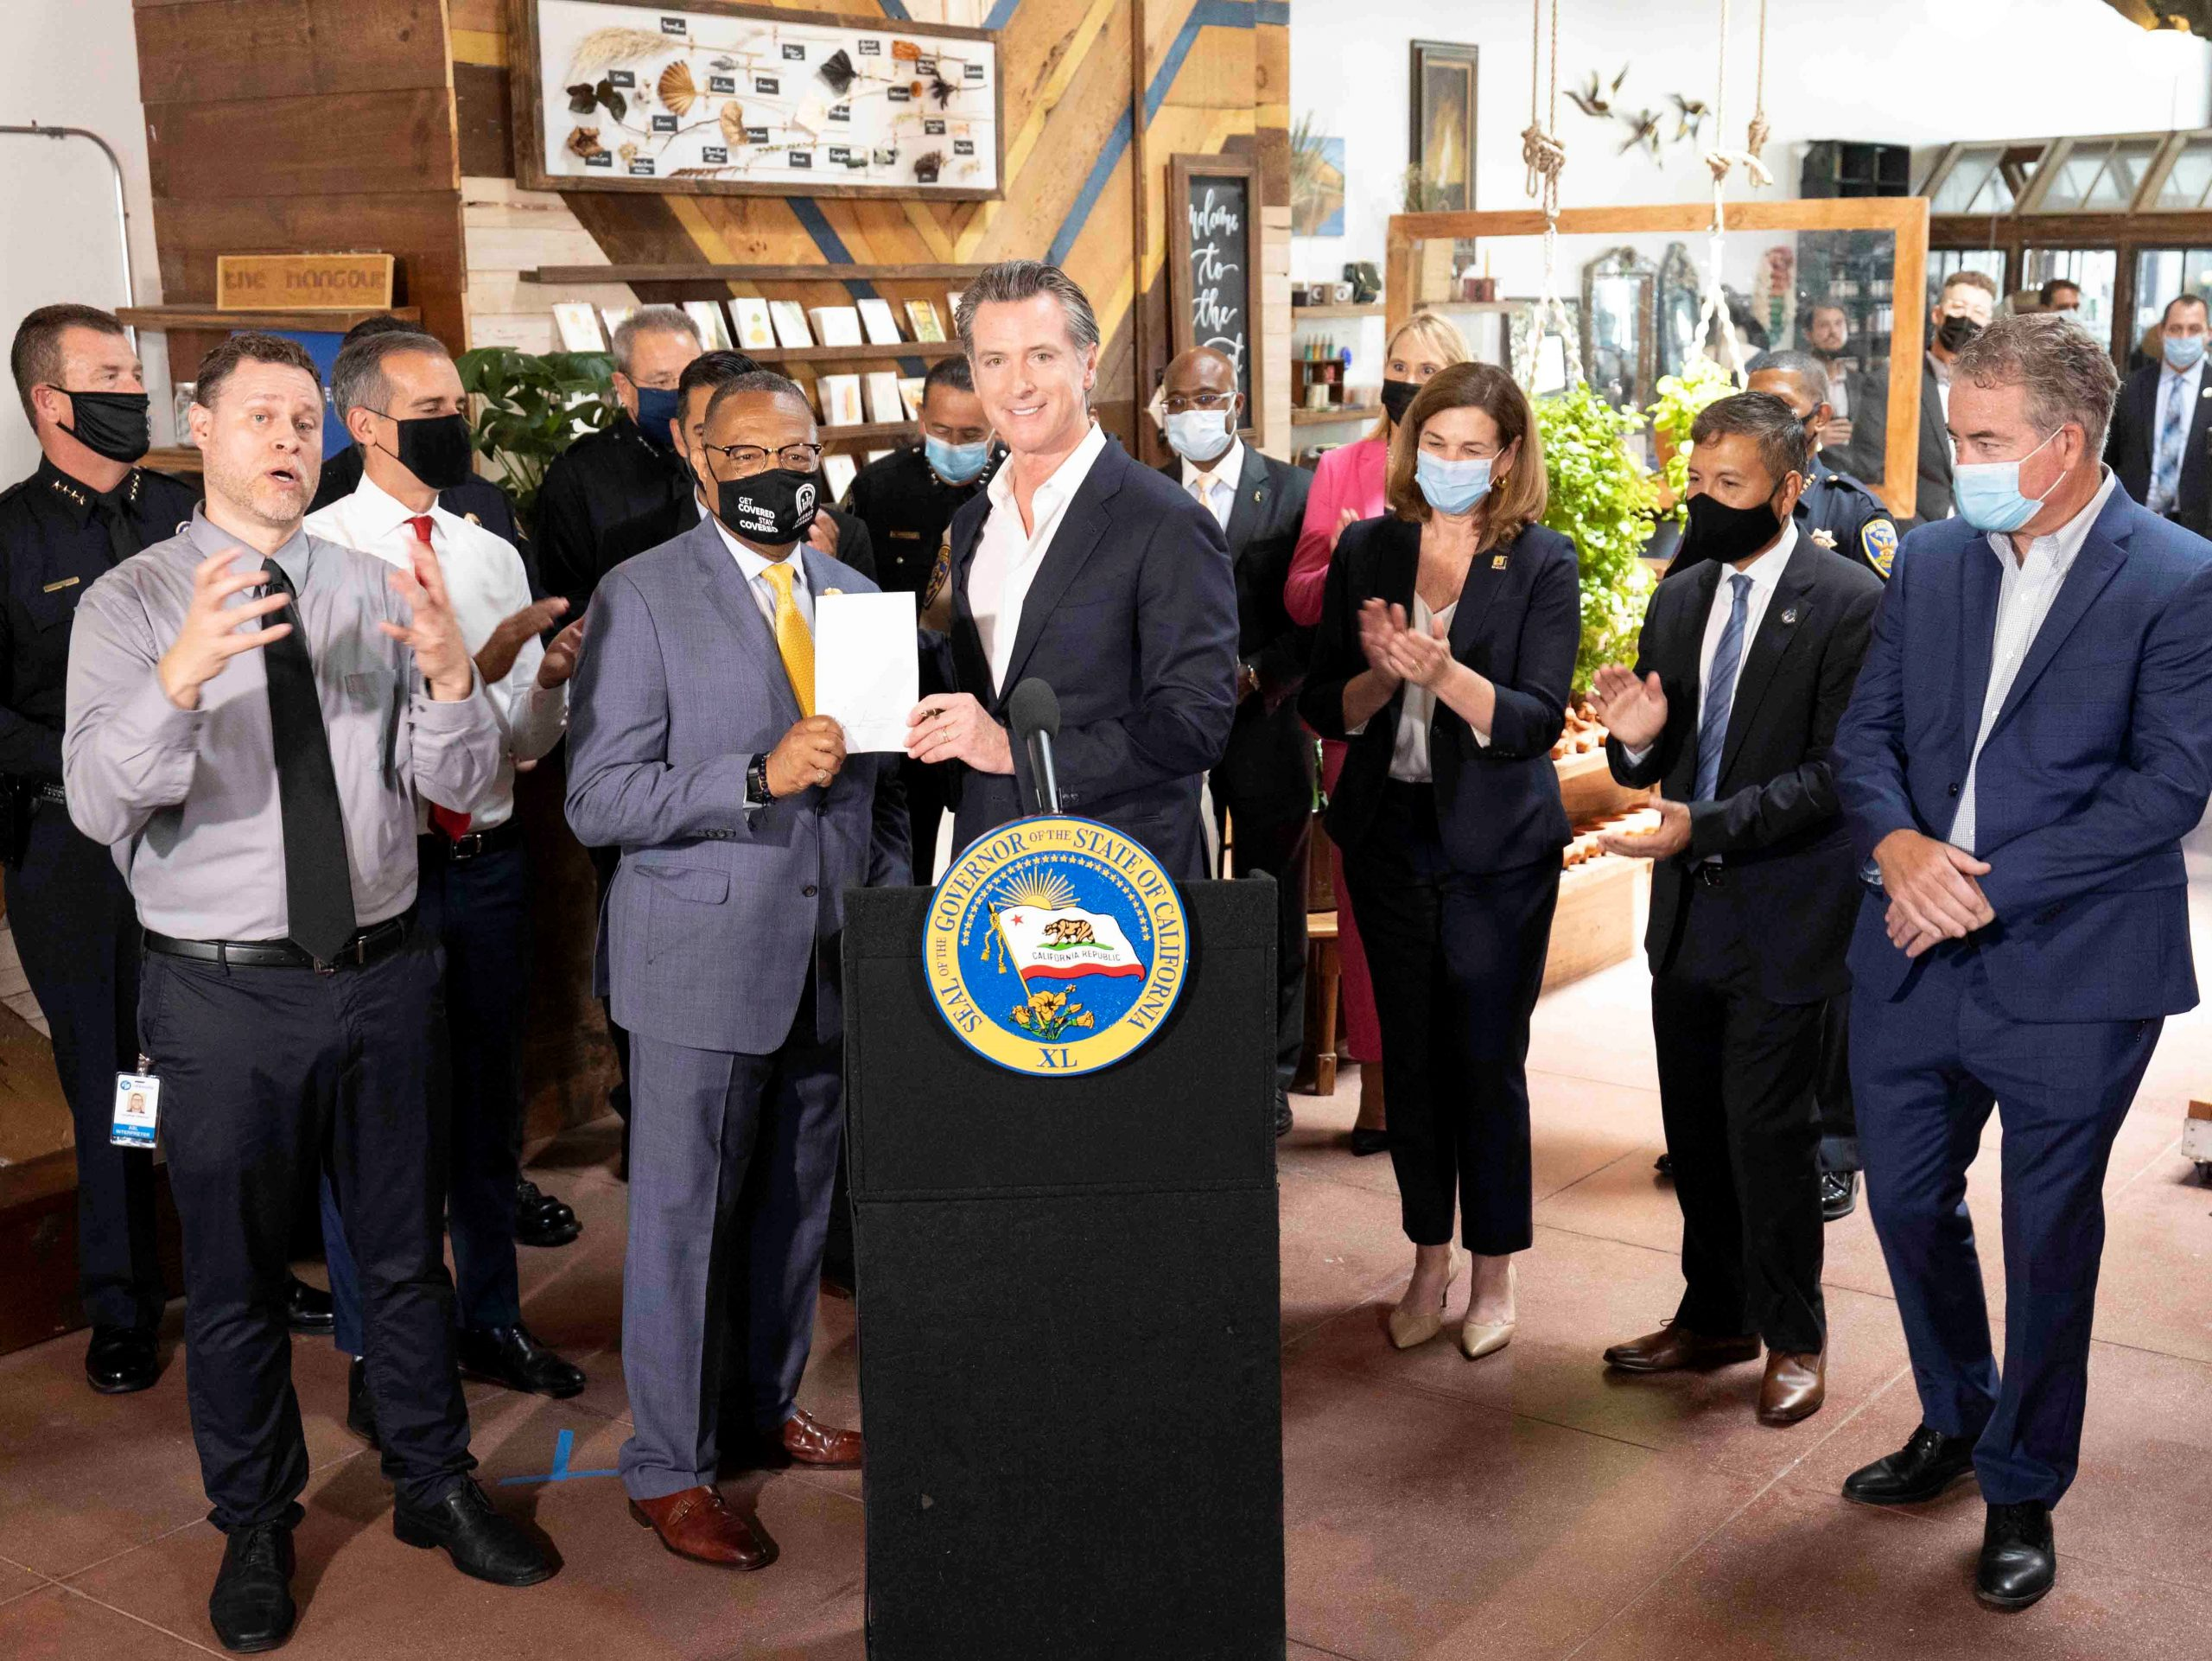 Governor Newsom Joins Law Enforcement Leaders and Big 13 Mayors to Discuss State Efforts to Reduce Crime, Signs Legislation Targeting Organized Retail Theft